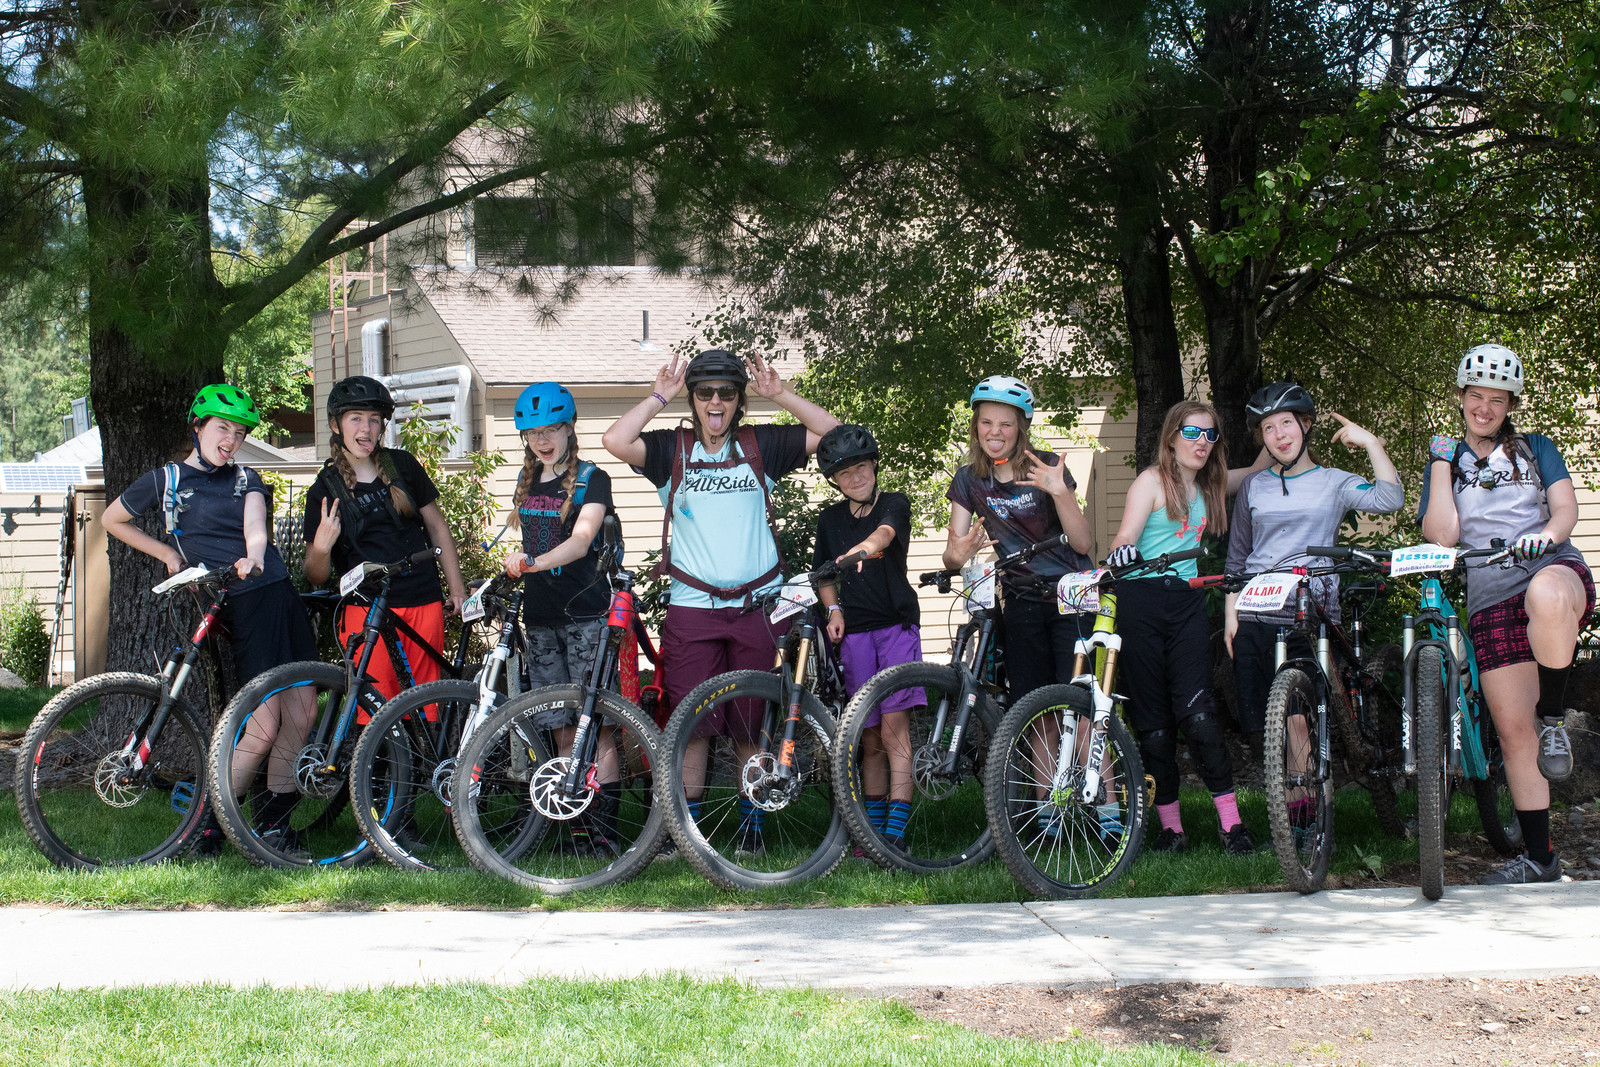 Head coach Cierra Smith has five Jr. downhill national championship titles and now helps young girls experience the power of bicycles